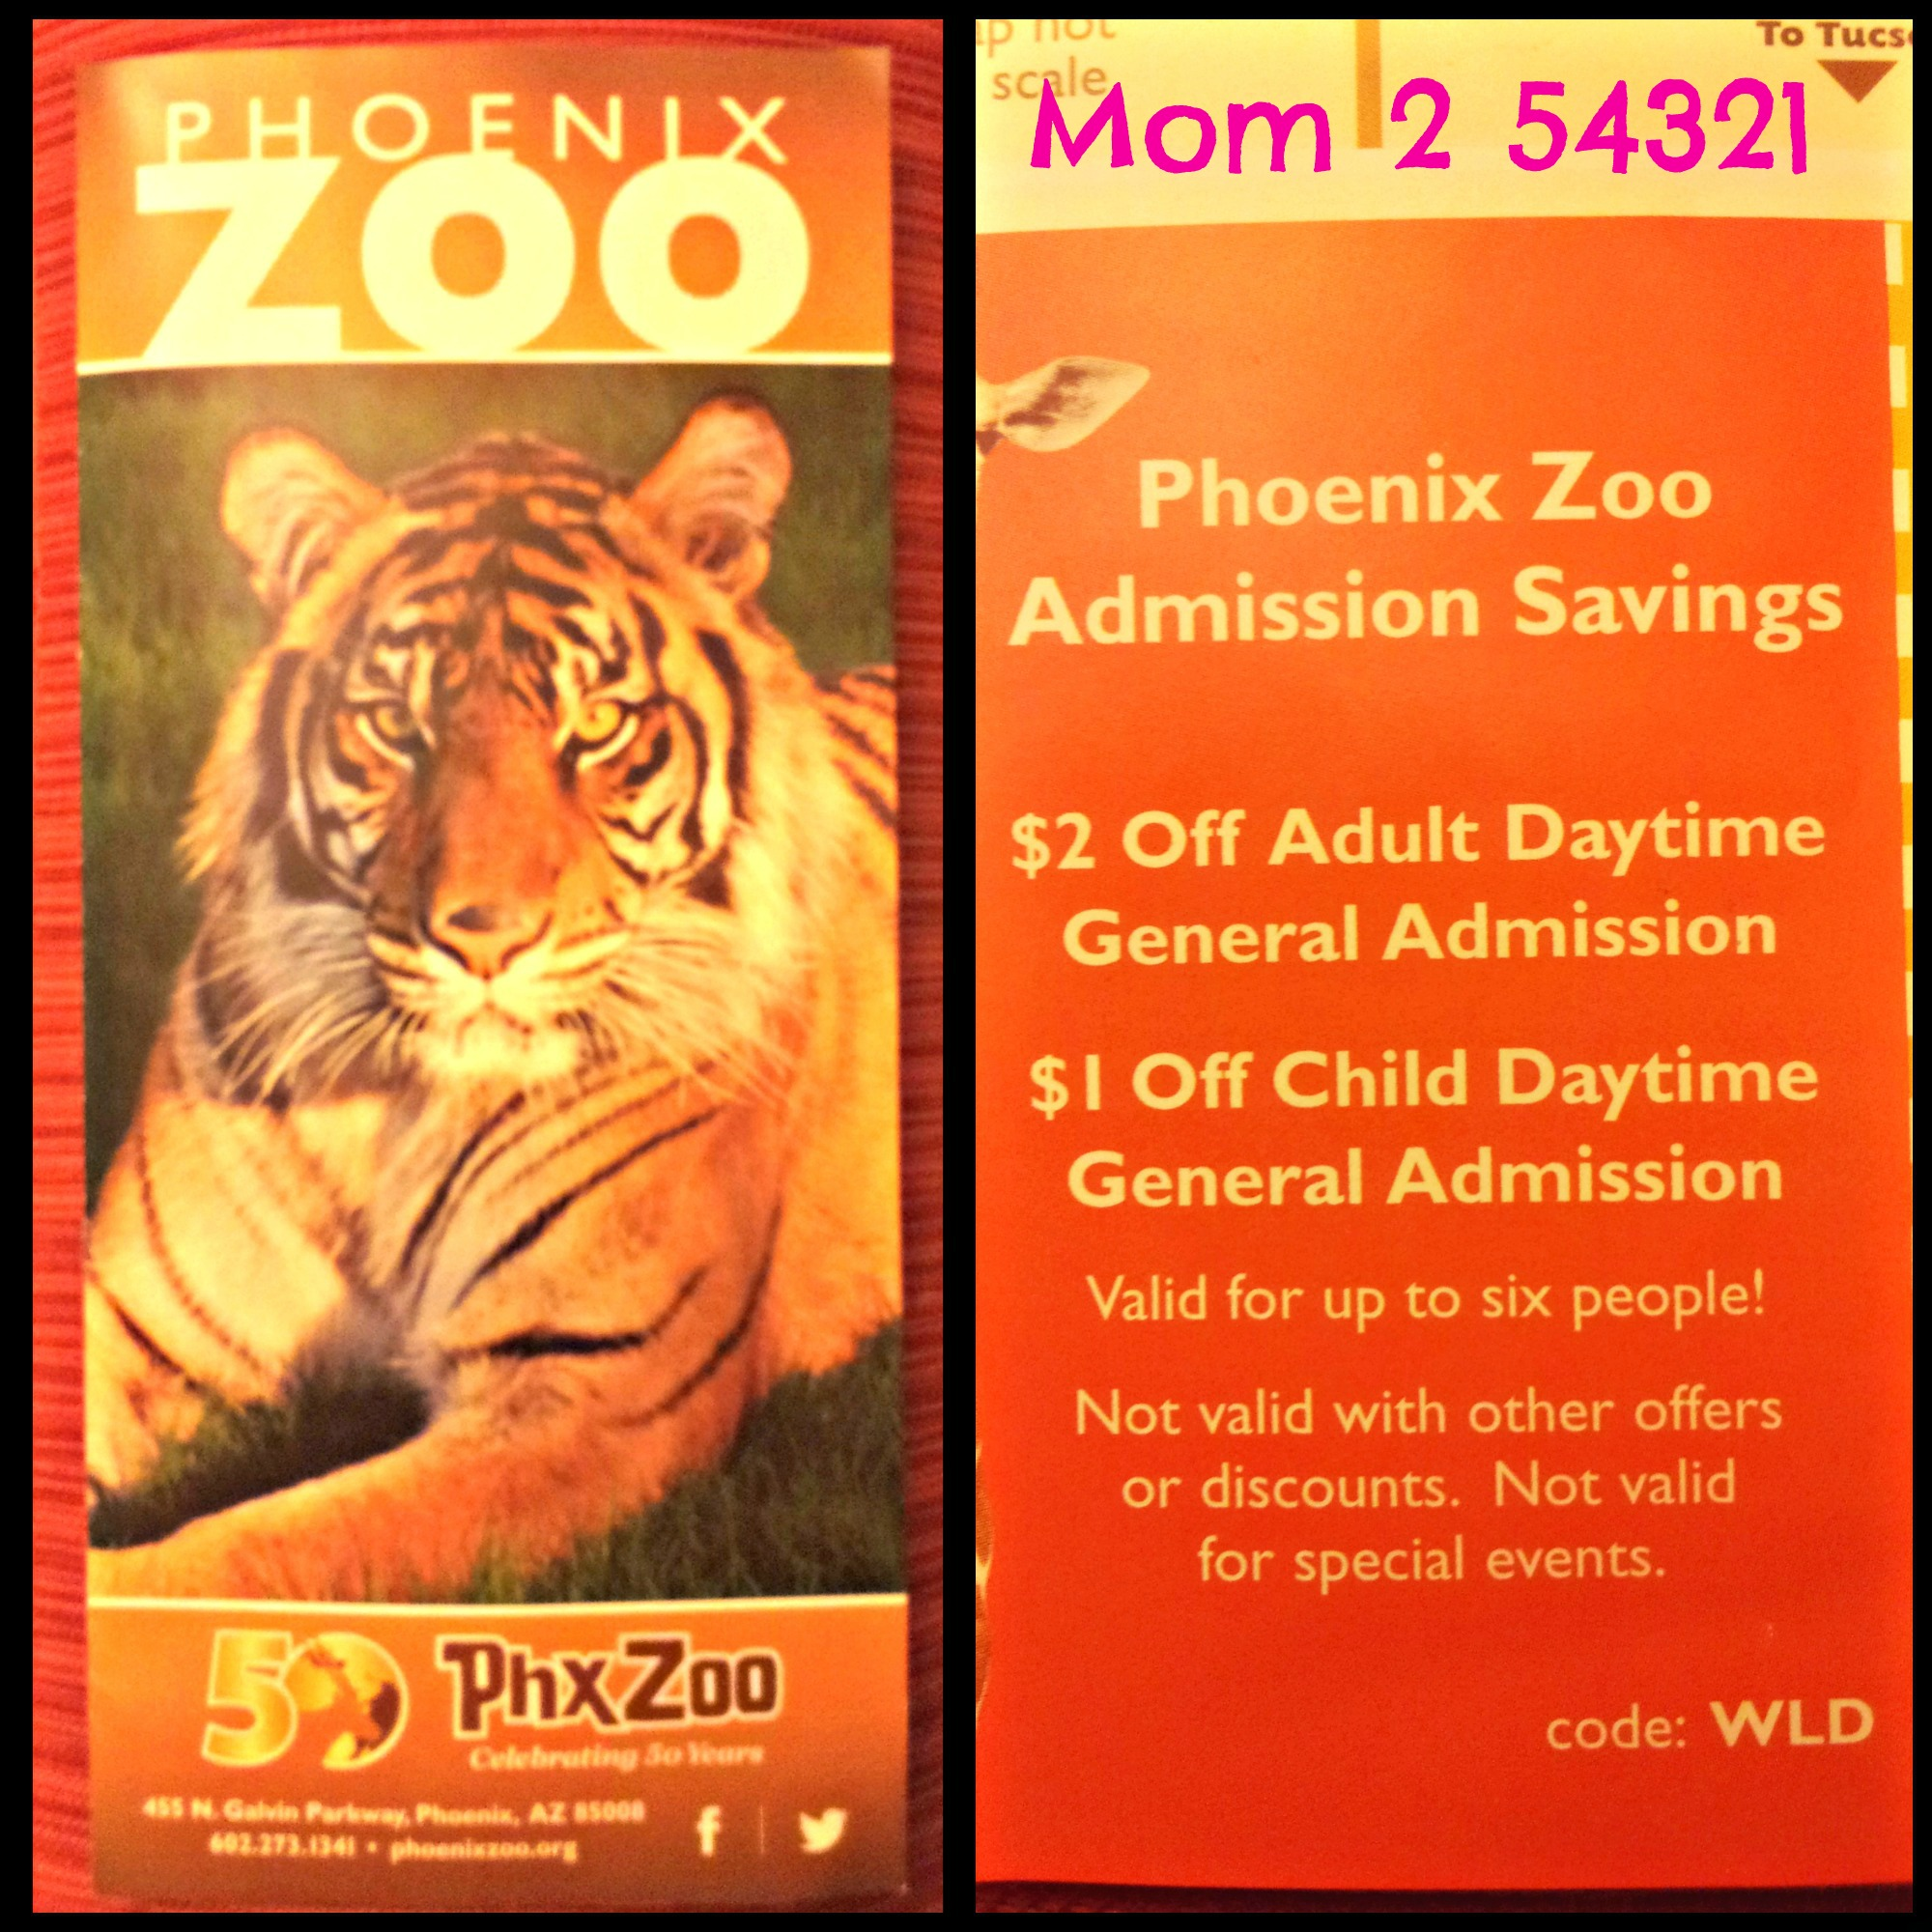 If you wish to visit the Zoo before receiving your card, simply bring your order confirmation to Membership or Guest Services with photo ID to receive a pass for the .